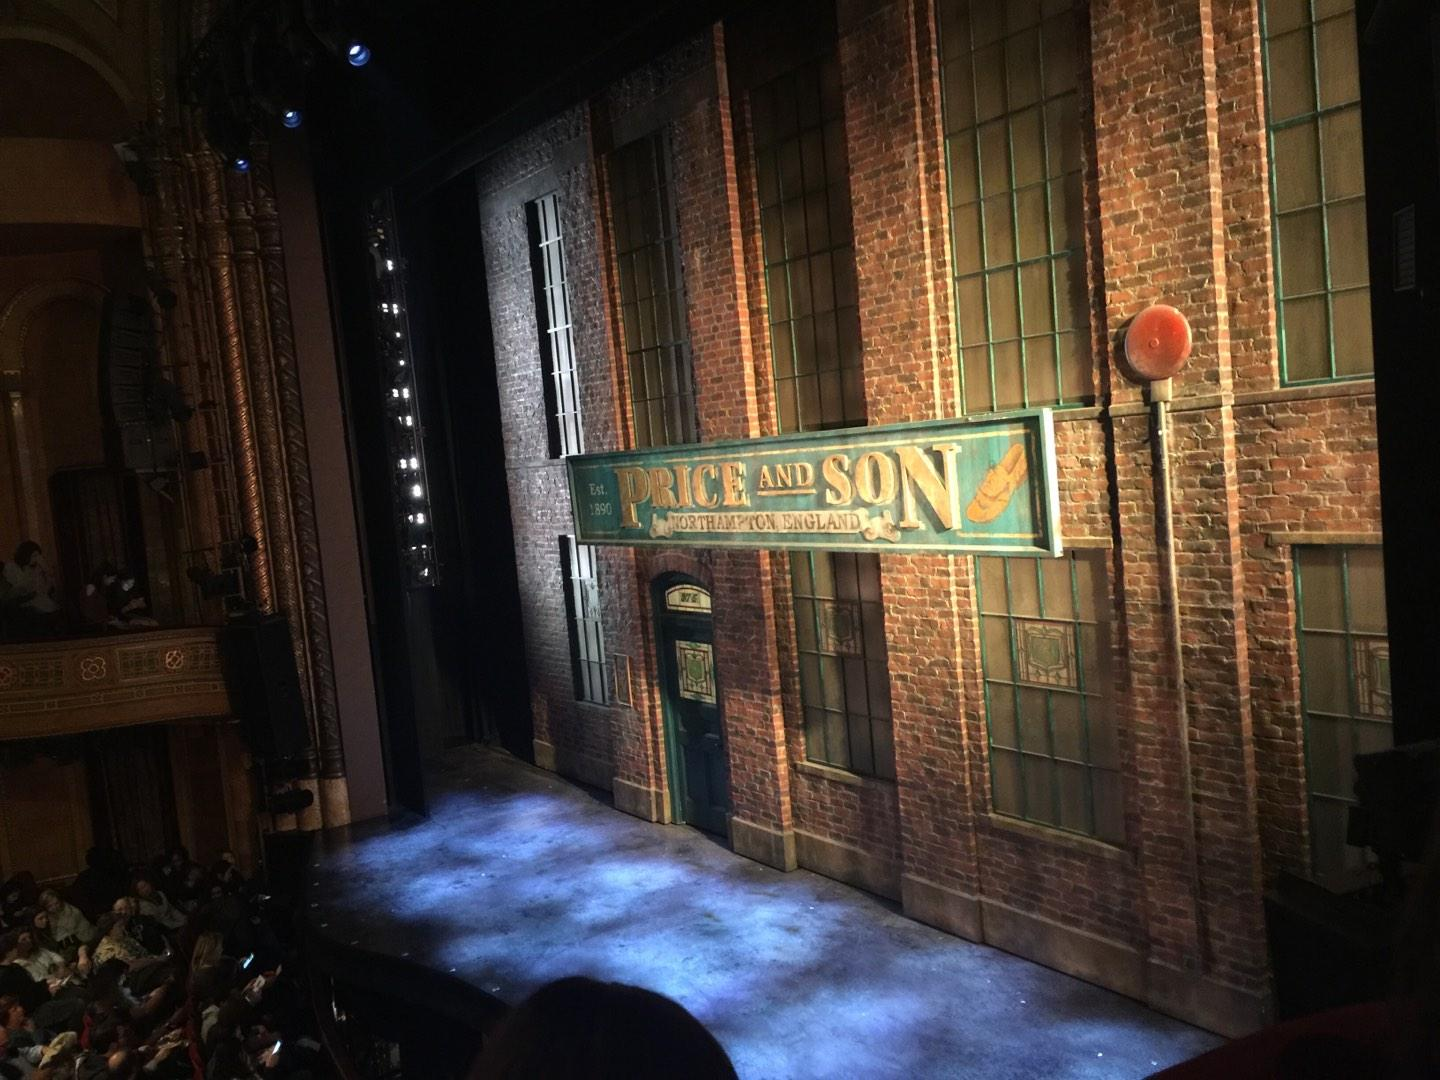 Al Hirschfeld Theatre Section RBOX Row D Seat 10